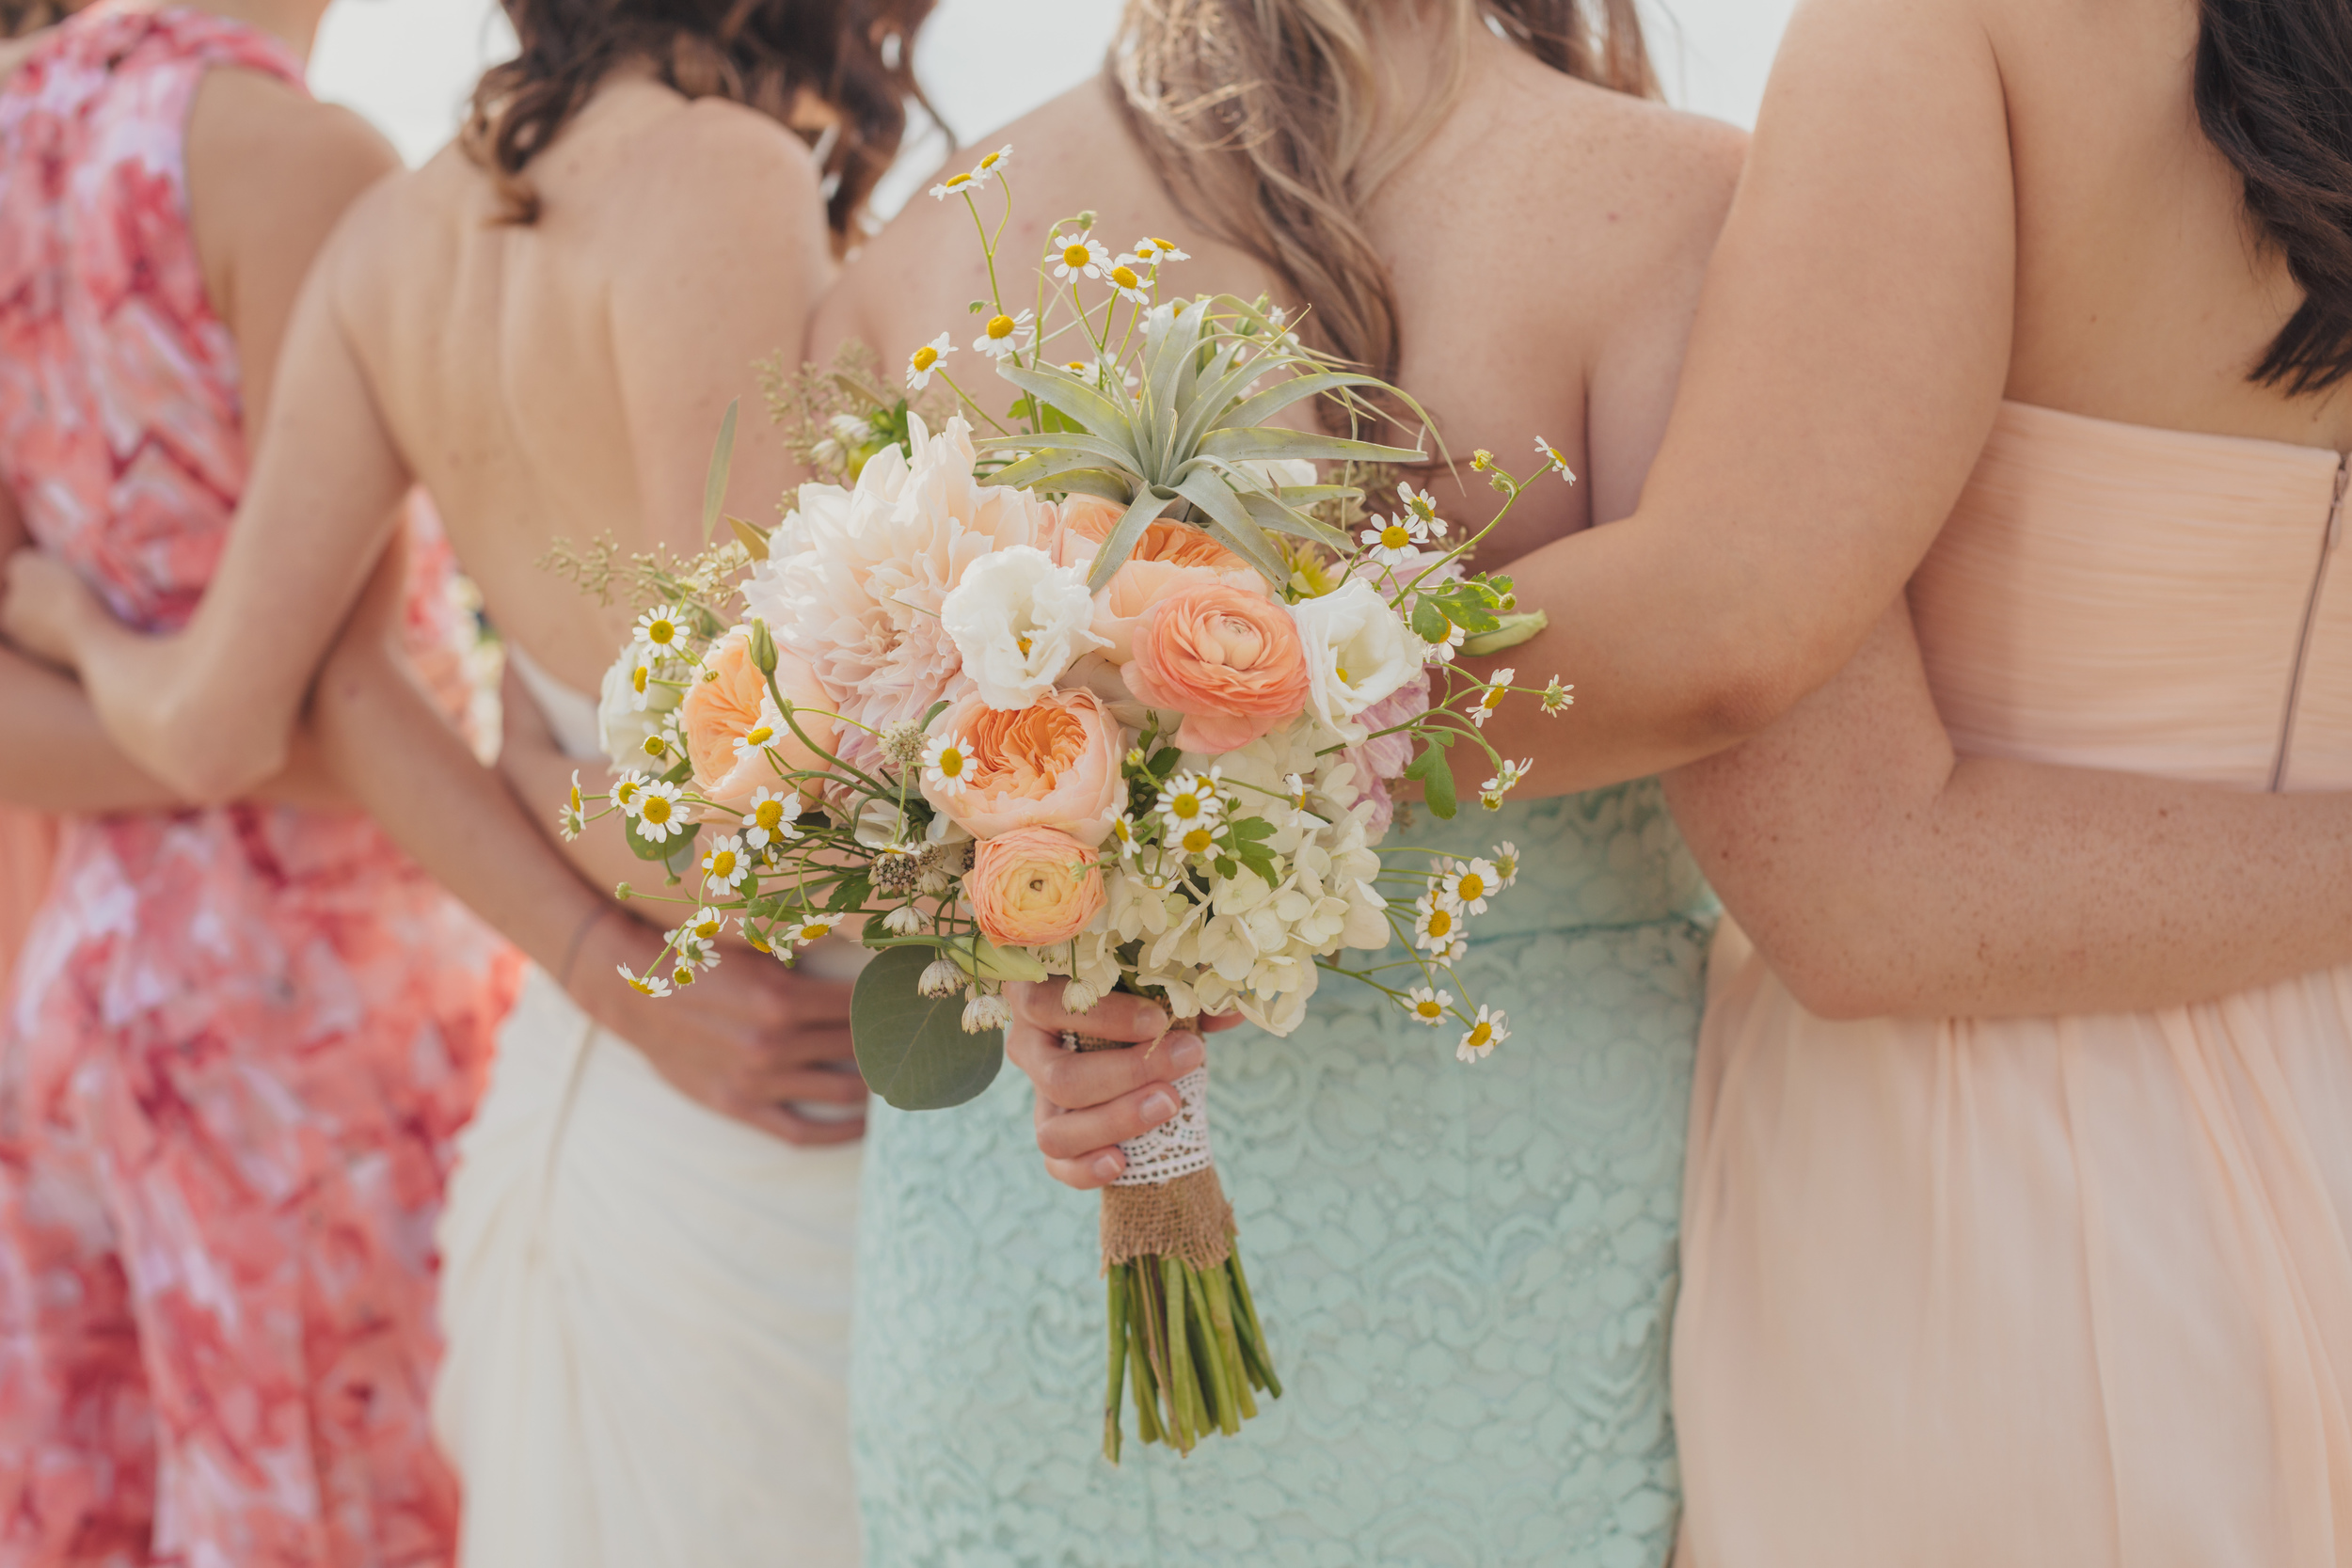 Flowers by Lace and Lilies - Air Plant Bouquet - Bridesmaids - Colorado Wedding - Wild Flower Bouquet